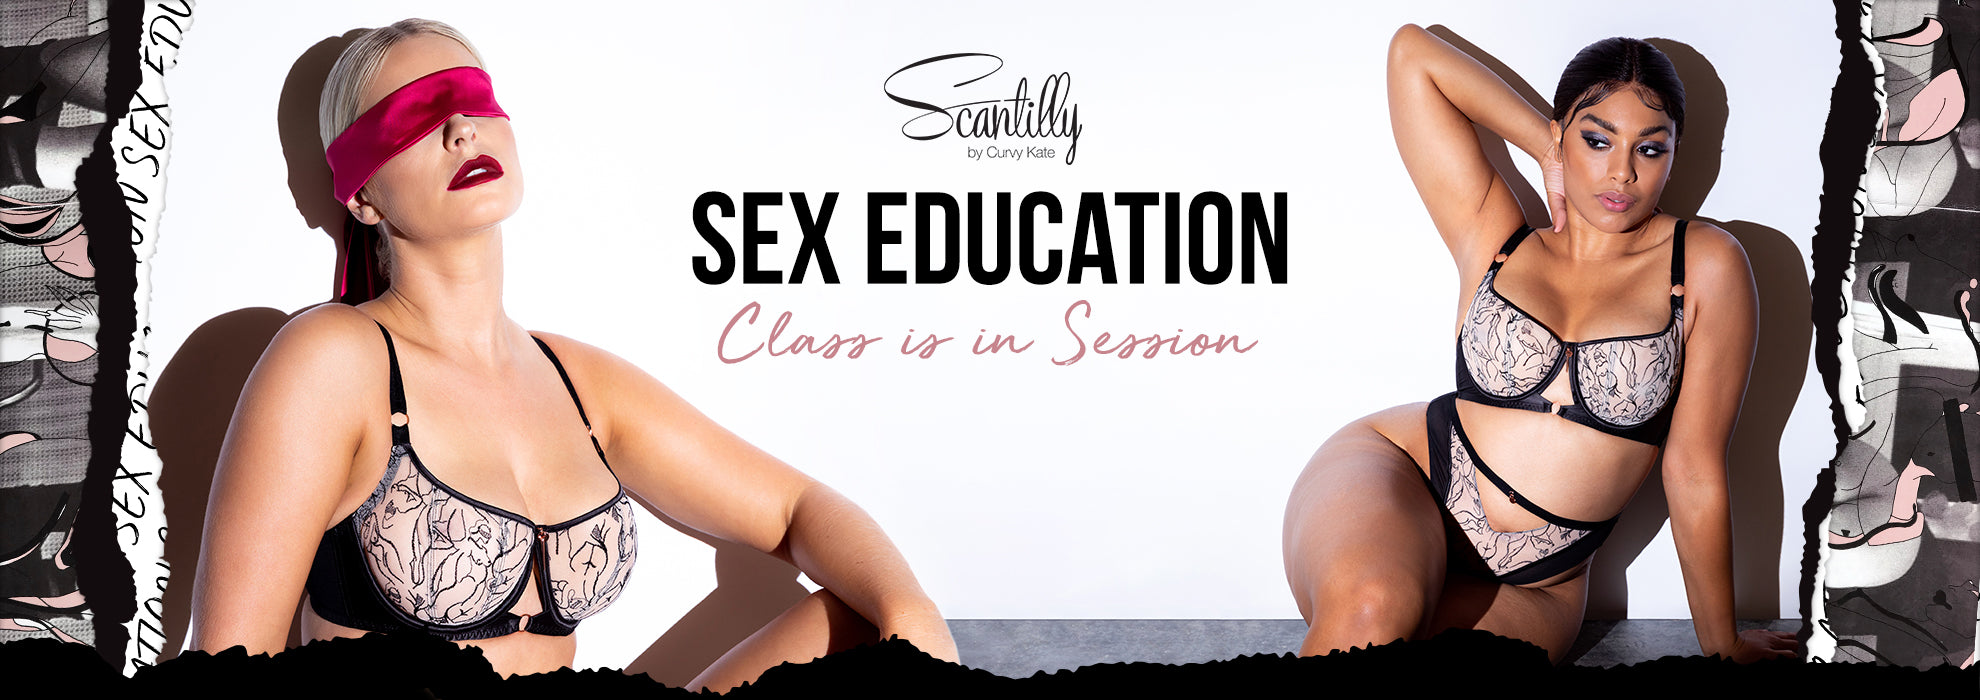 SEX EDUCATION - Class is in session